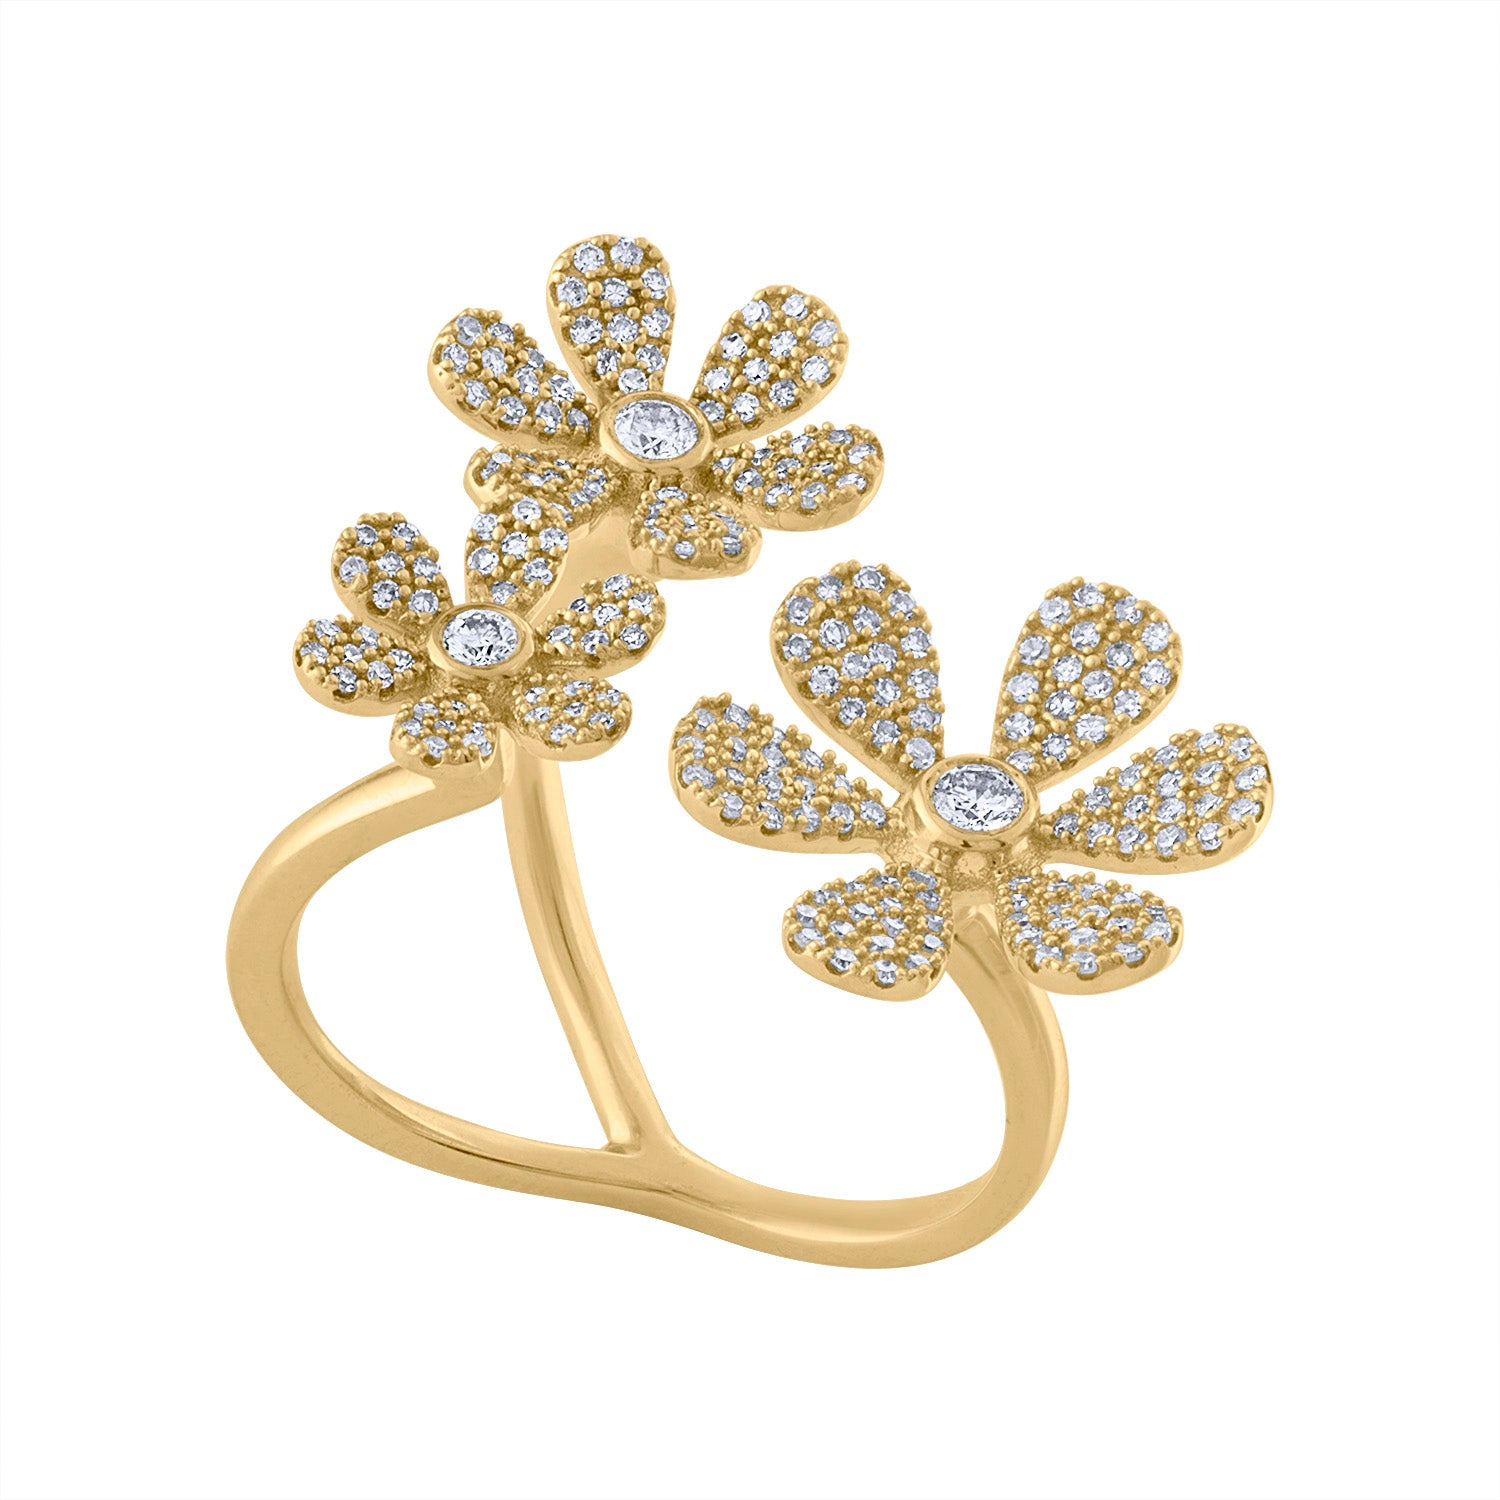 14KT GOLD DIAMOND 3 FLOWER RING